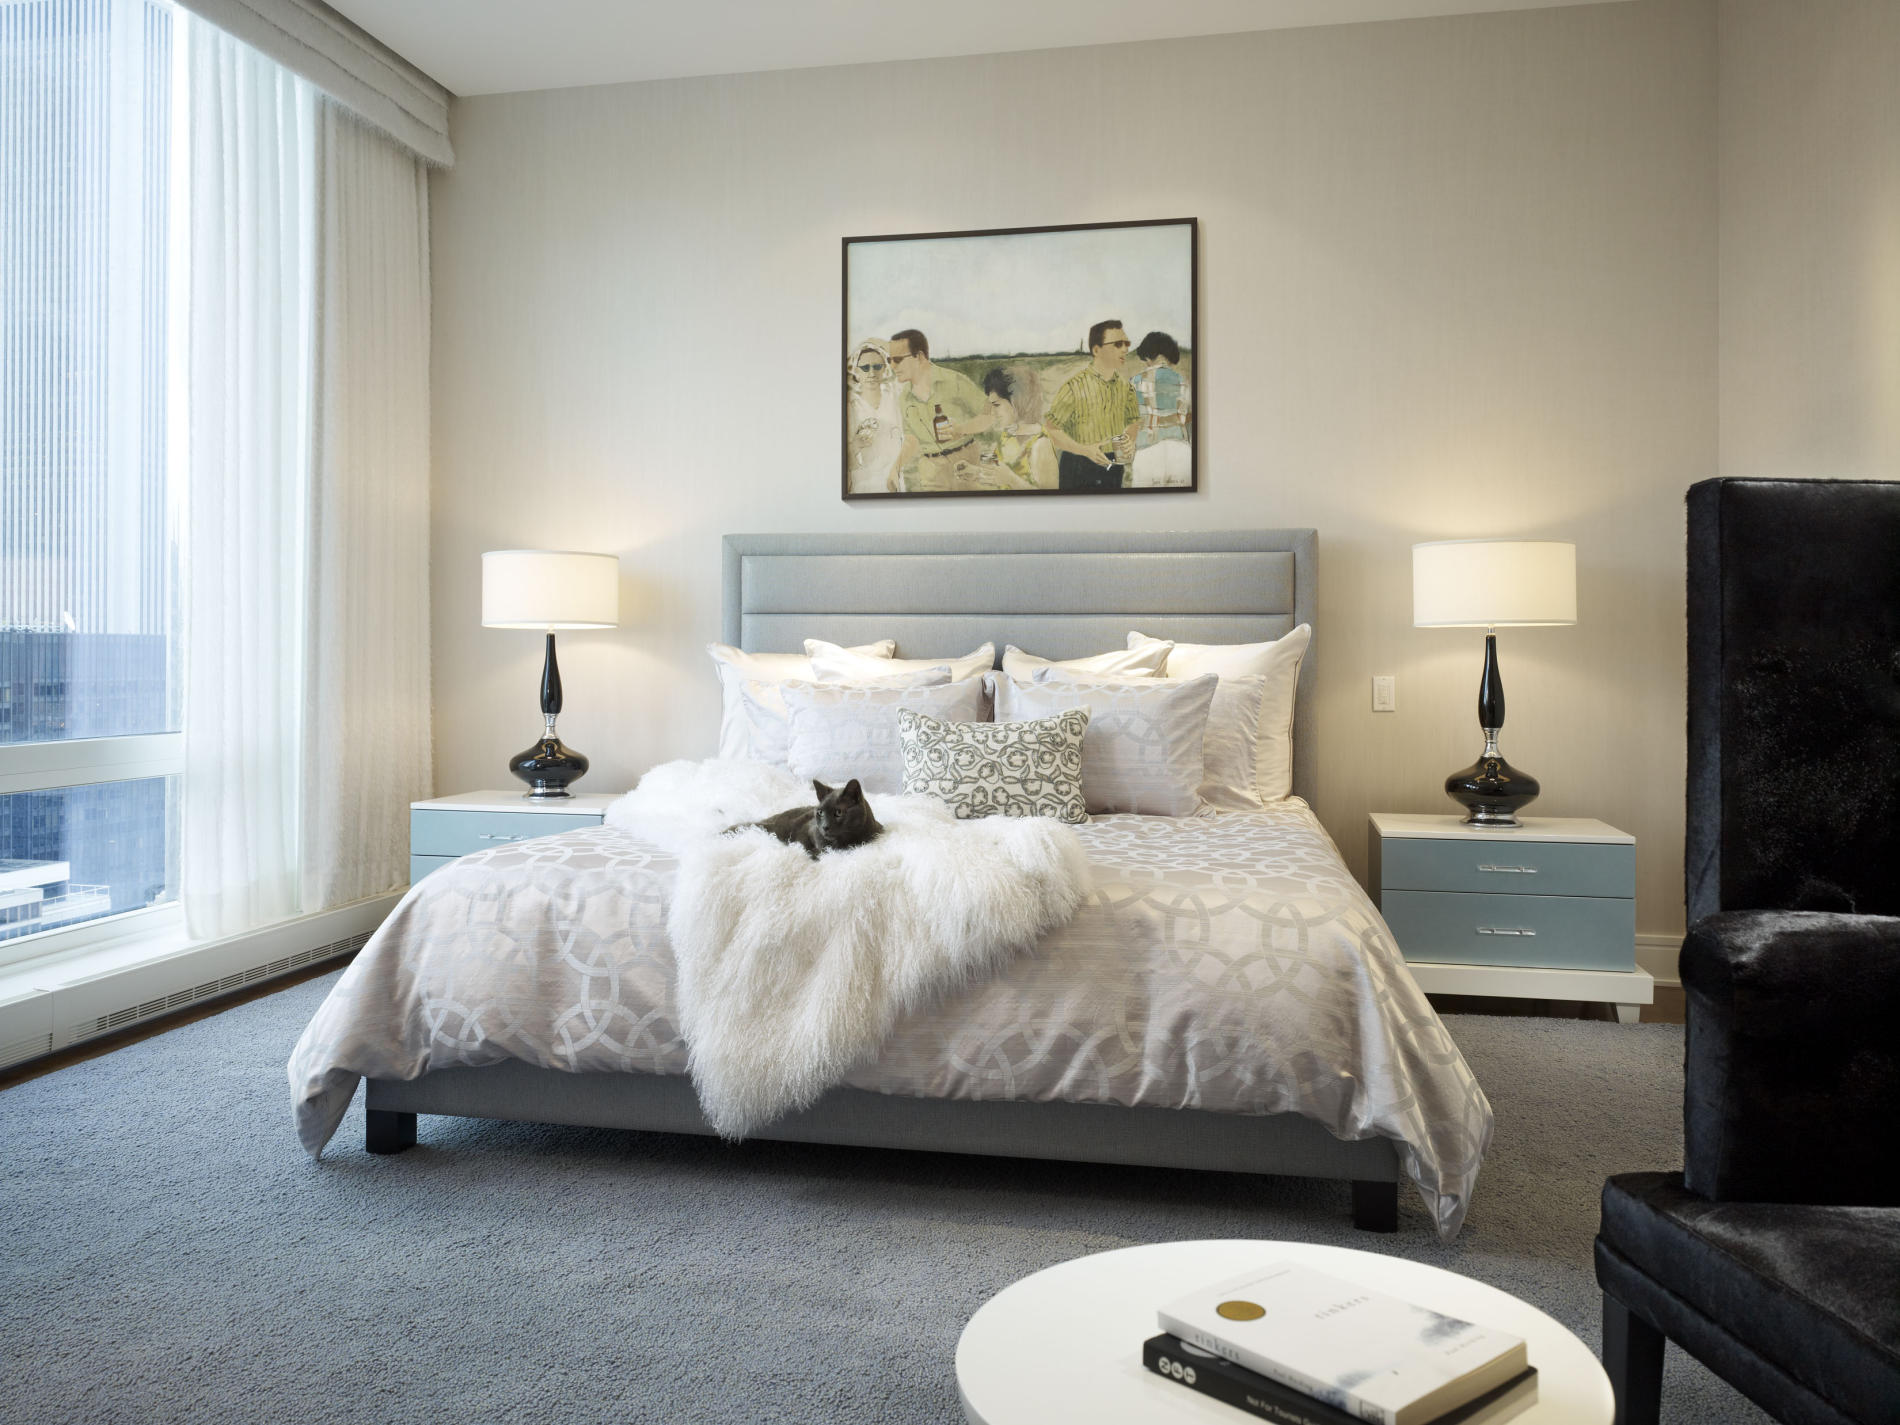 5 Tips for Staging Your Home to Get the Best Price - Metro Vancouver Real Estate 2013